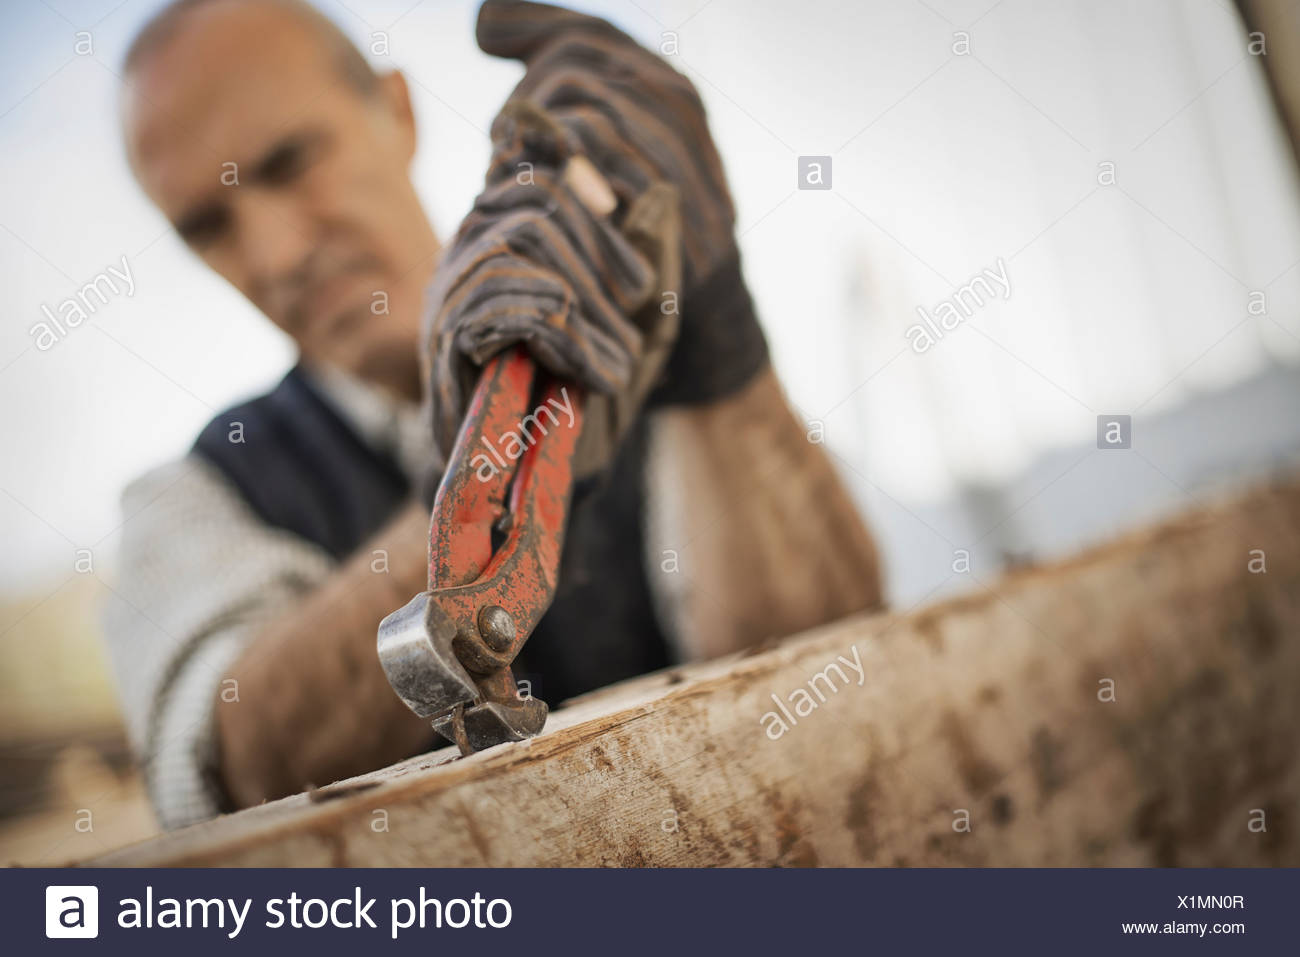 A man working in a reclaimed timber yard Using a tool to remove metals from a reclaimed piece of timber - Stock Image